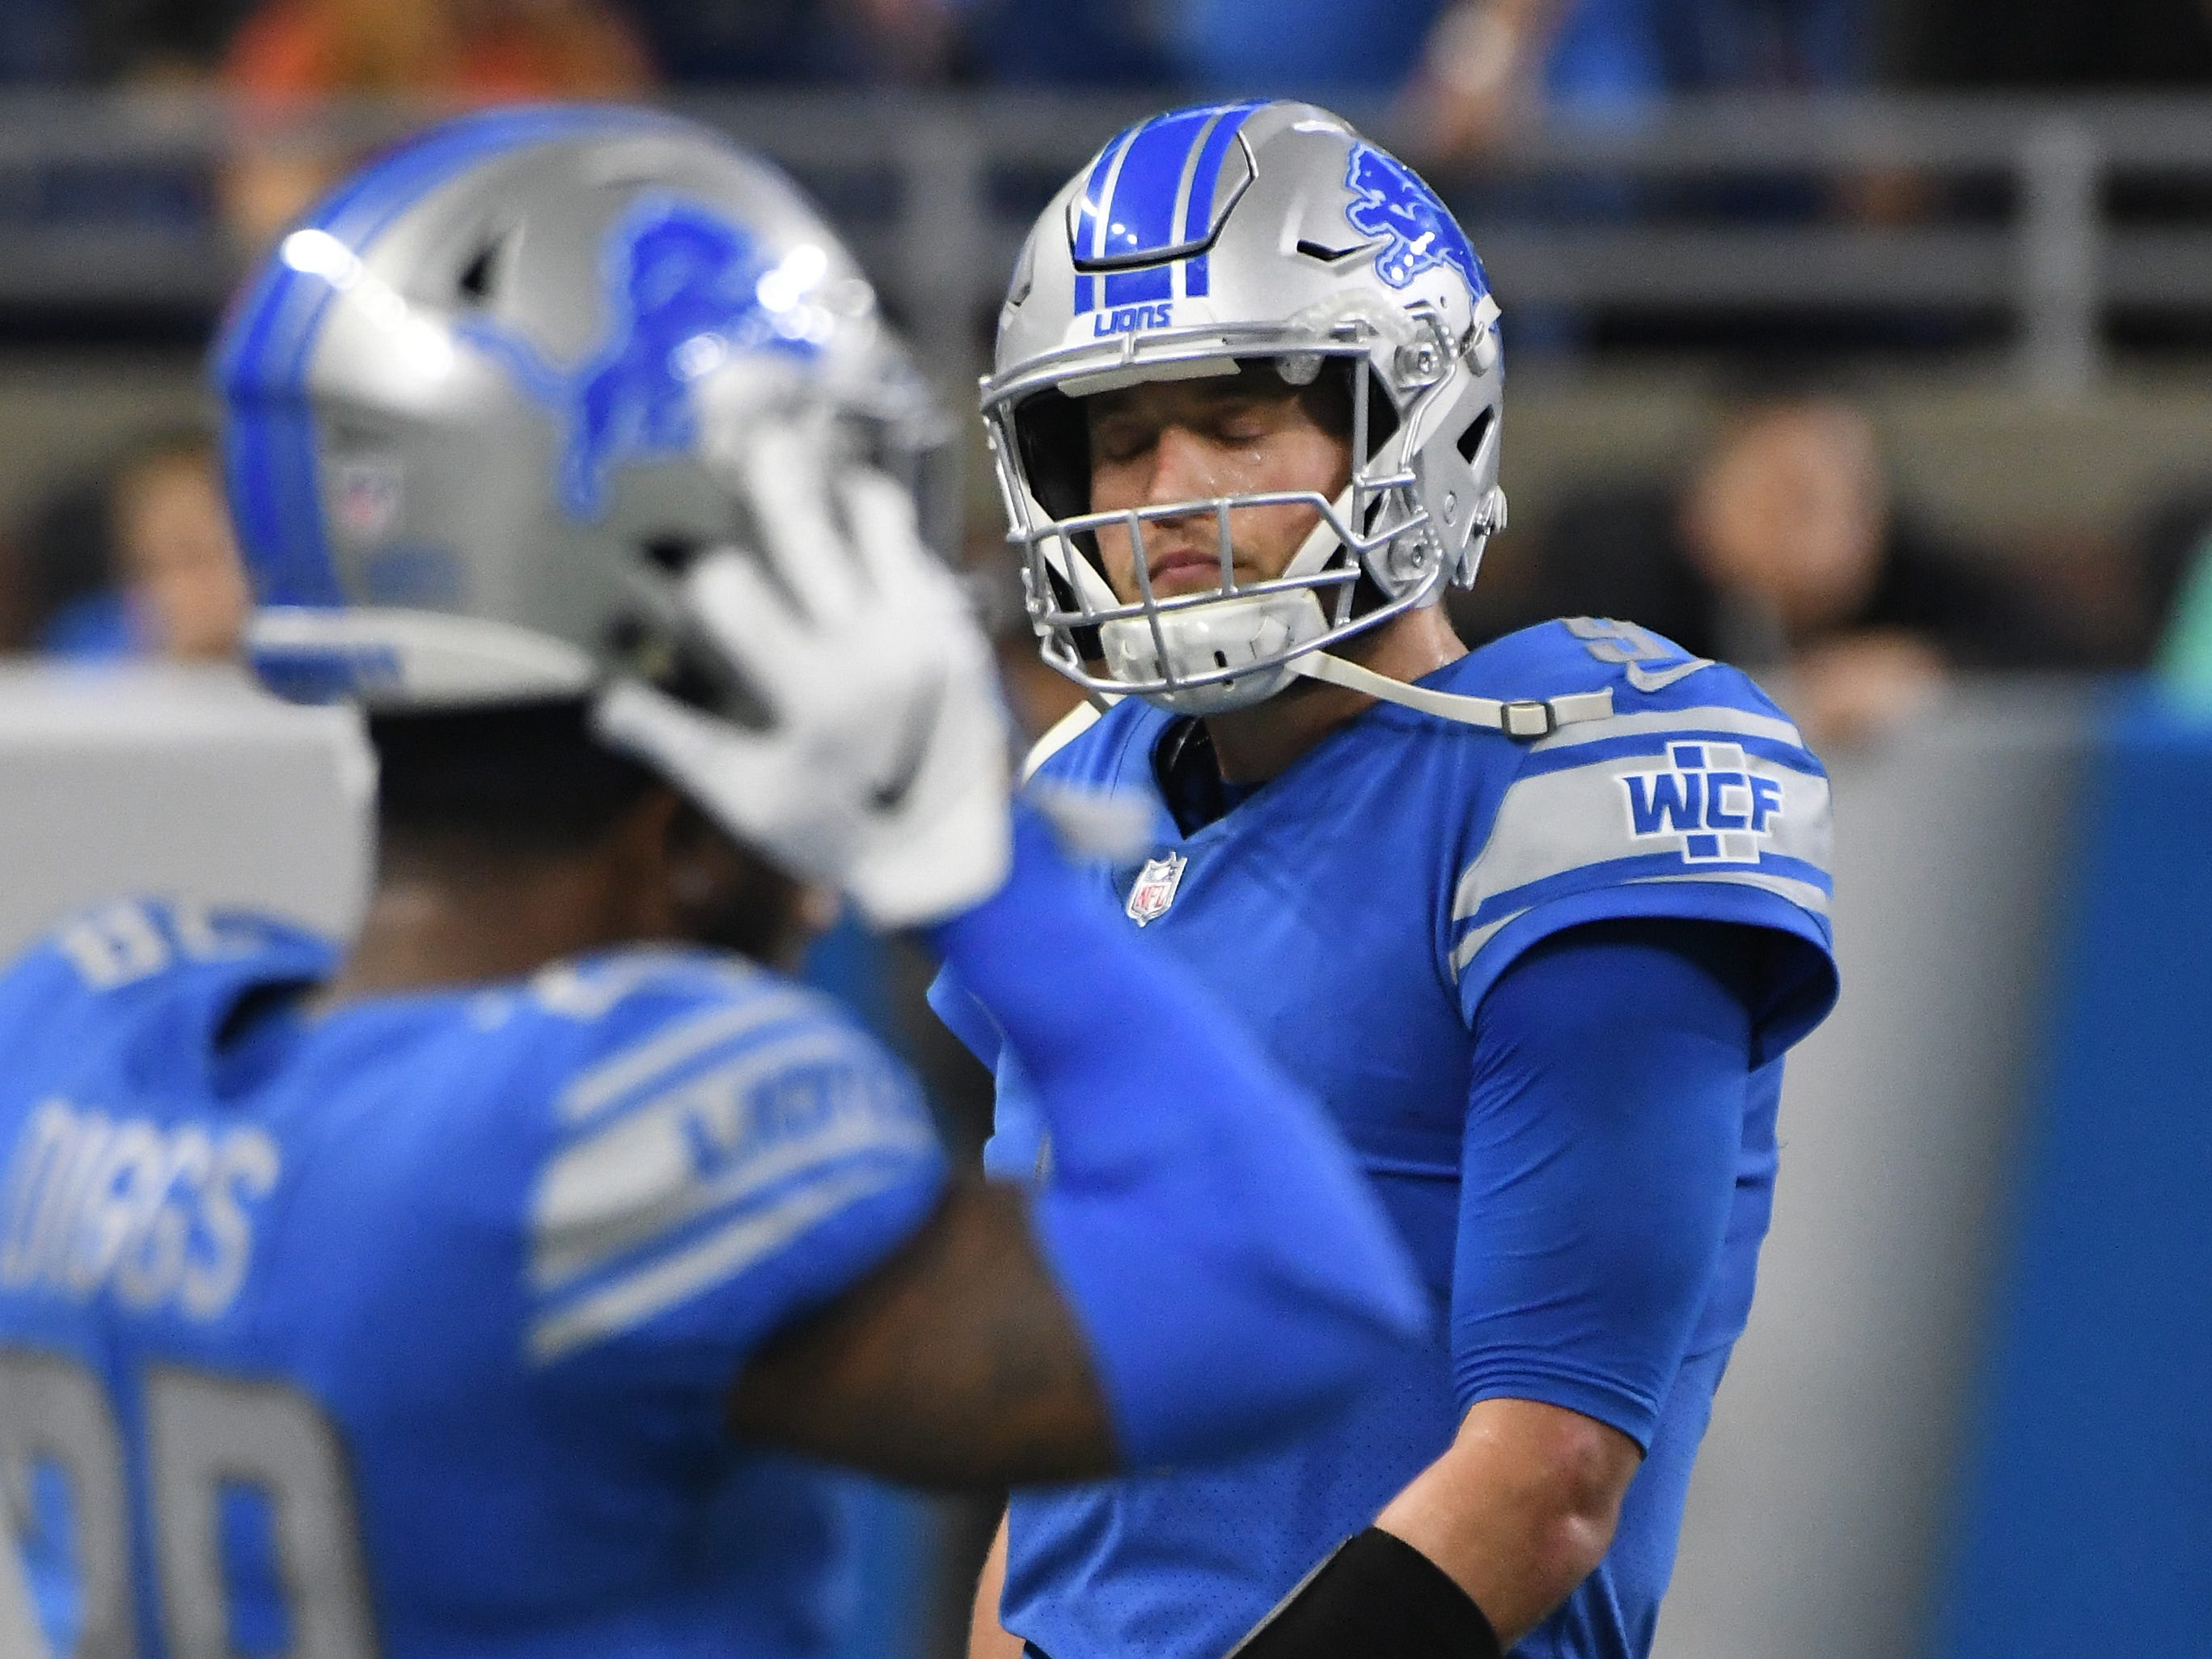 Lions quarterback Matthew Stafford walks off the field after throwing an interception, turning the ball over to the Rams who ran out the clock late in the fourth quarter.